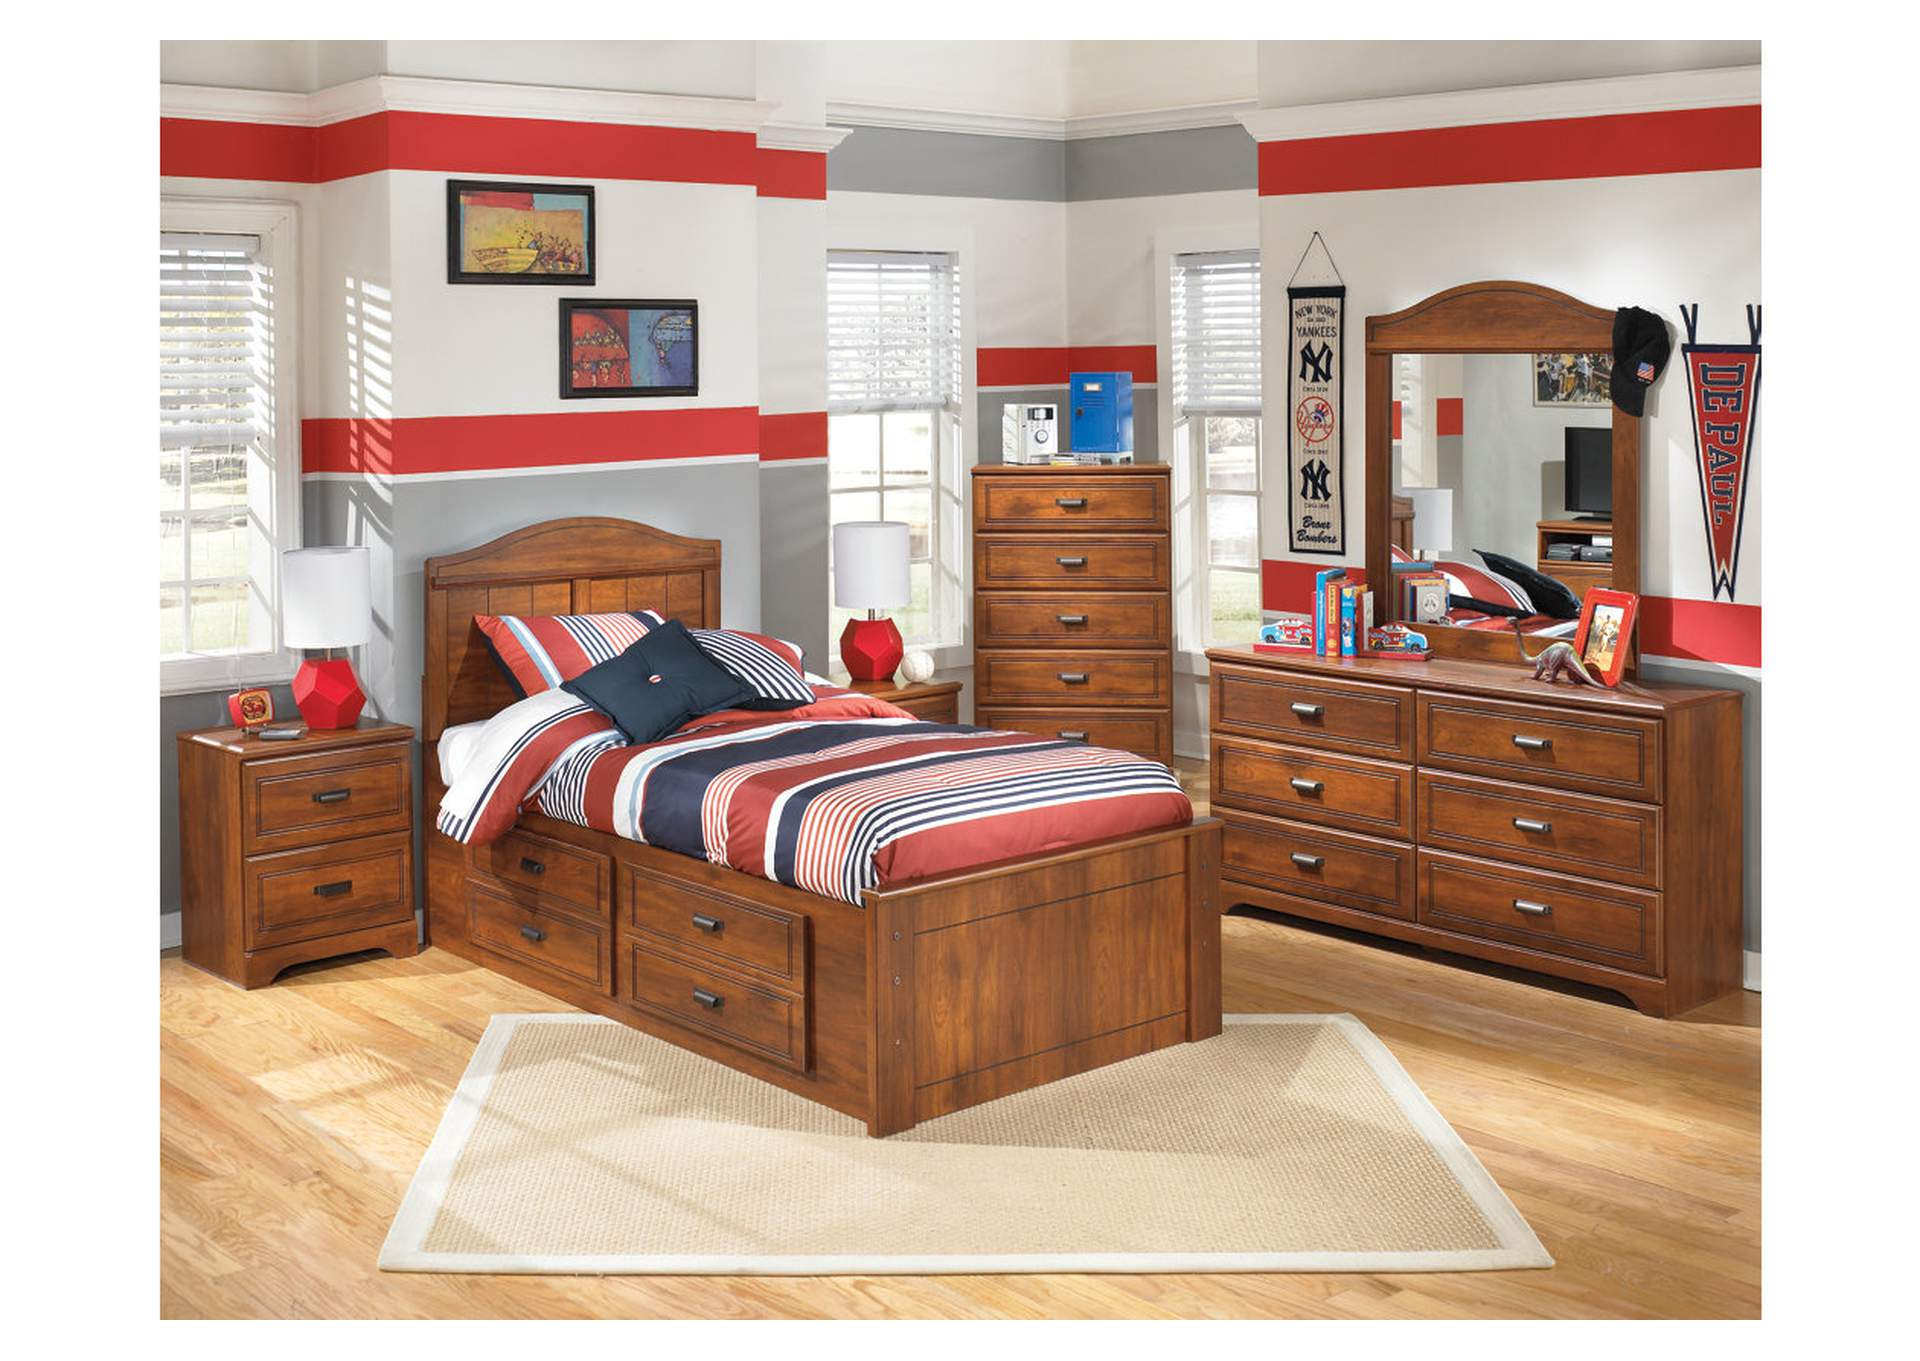 Barchan Twin Panel Storage Bed w/Dresser, Mirror & Drawer Chest,Signature Design By Ashley